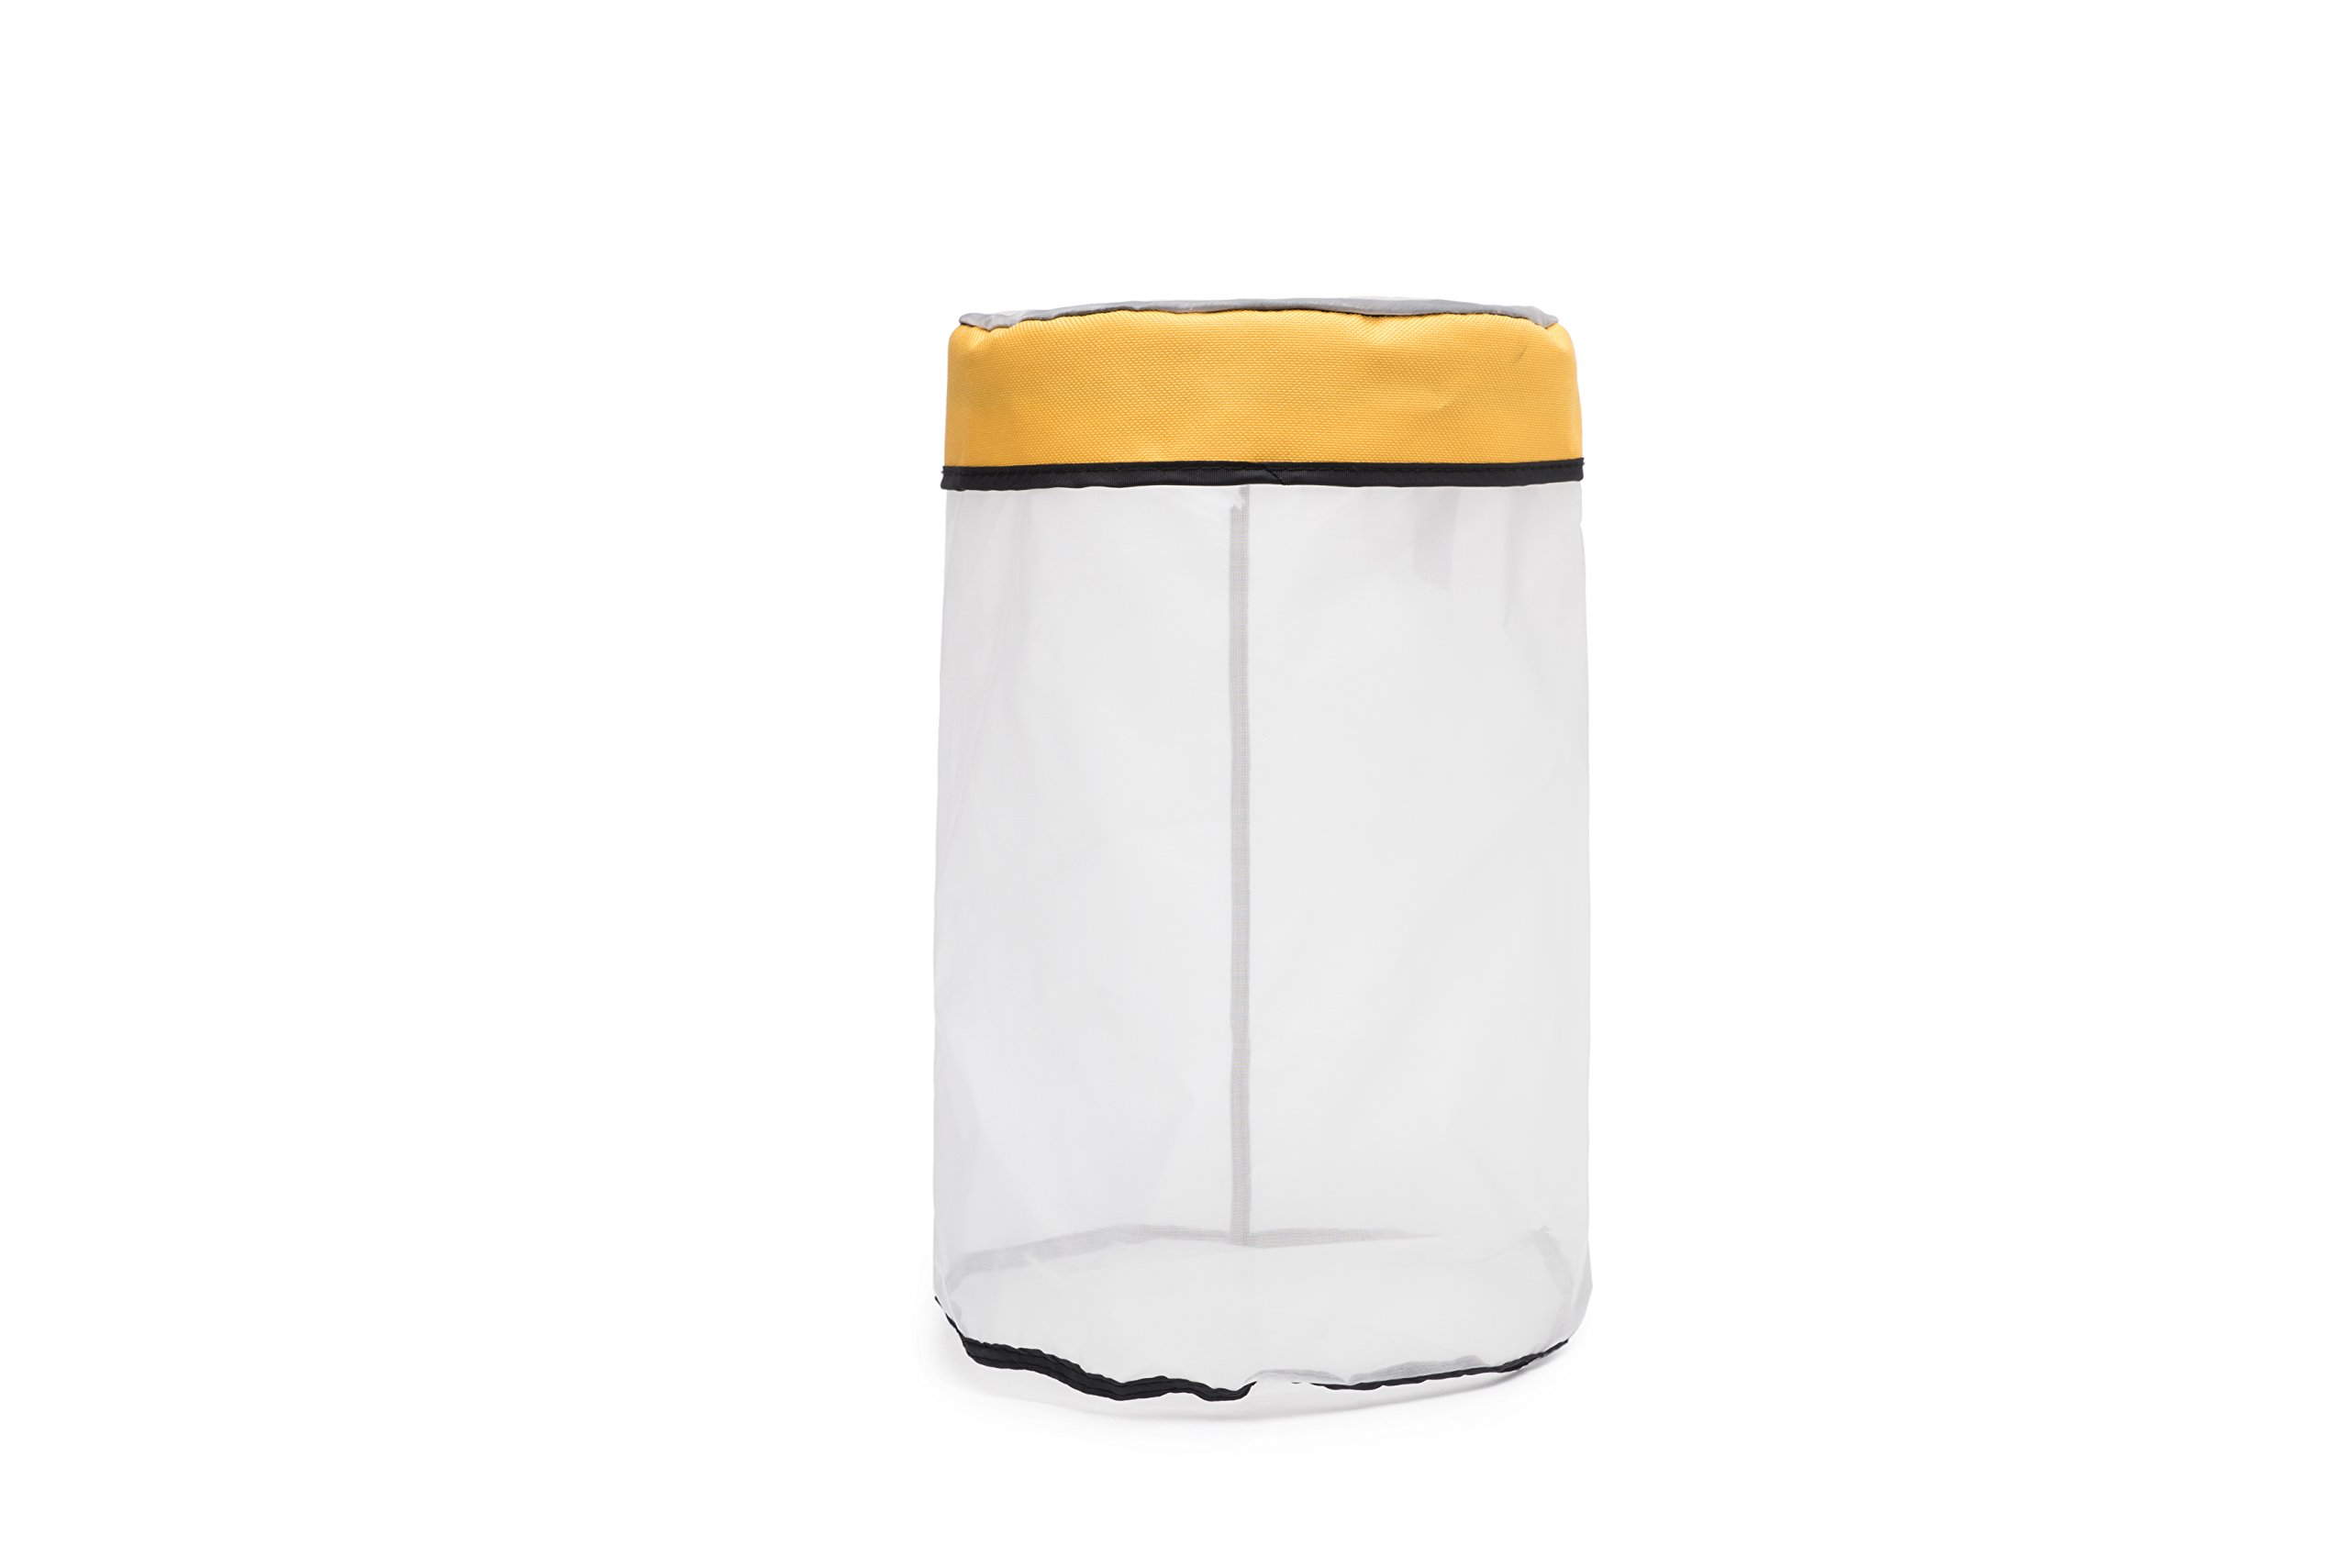 Beslands 5 Gallon 220 Micron Zipper Ice Mesh Hash Bubble Bag Kit for Extracting Herbal Medicine Washing Machine Extractor Filter Bag (Yellow)